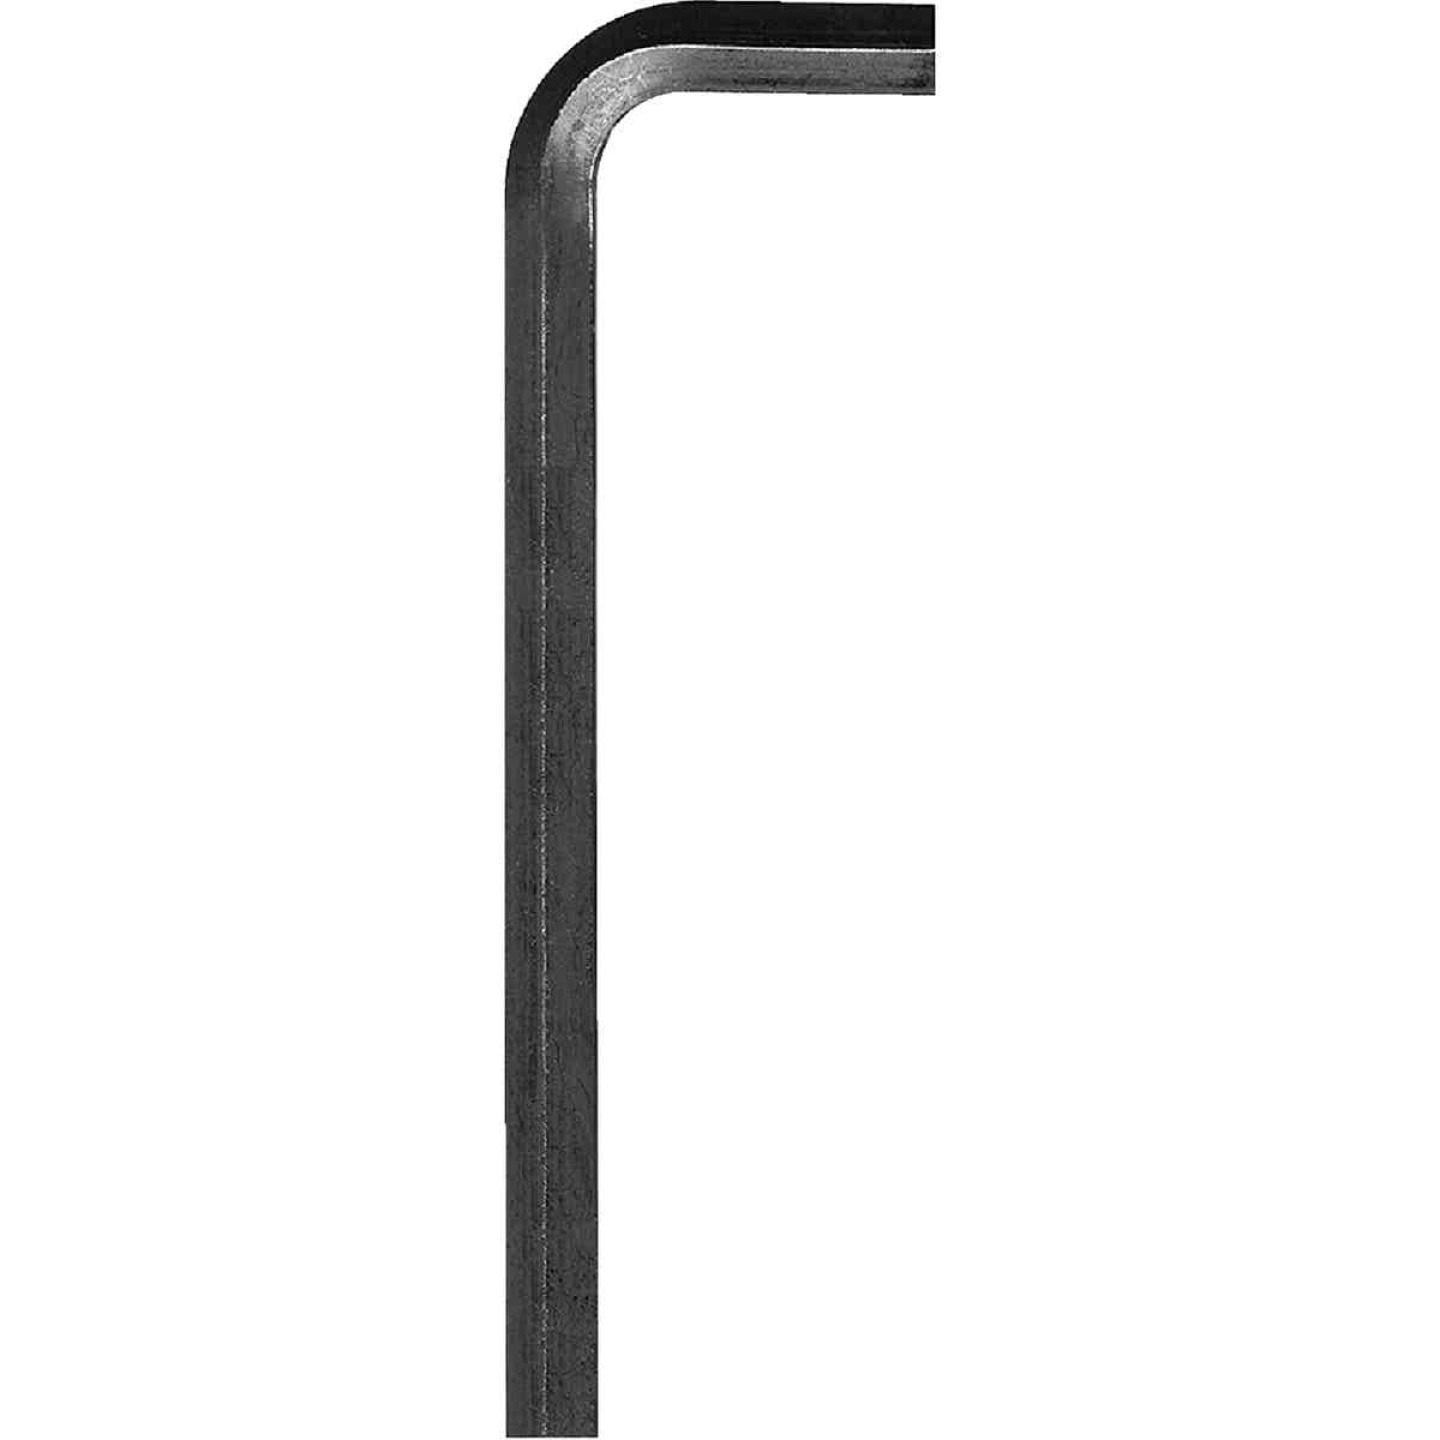 Eklind 9/64 In. Standard Hex Key Wrench Image 1